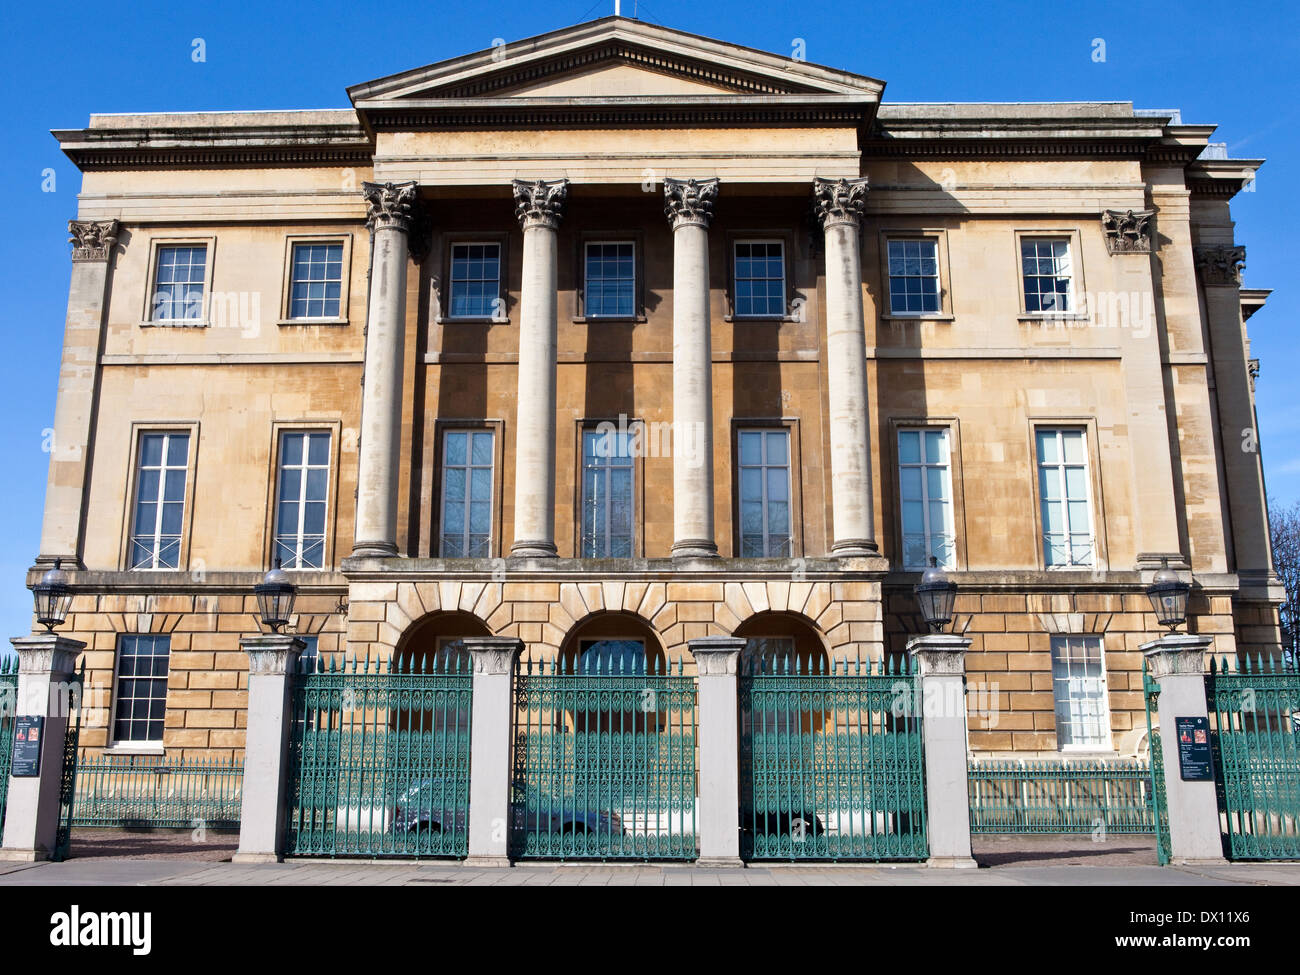 The magnificent Apsley House (also known as the Wellington Museum) in London. - Stock Image